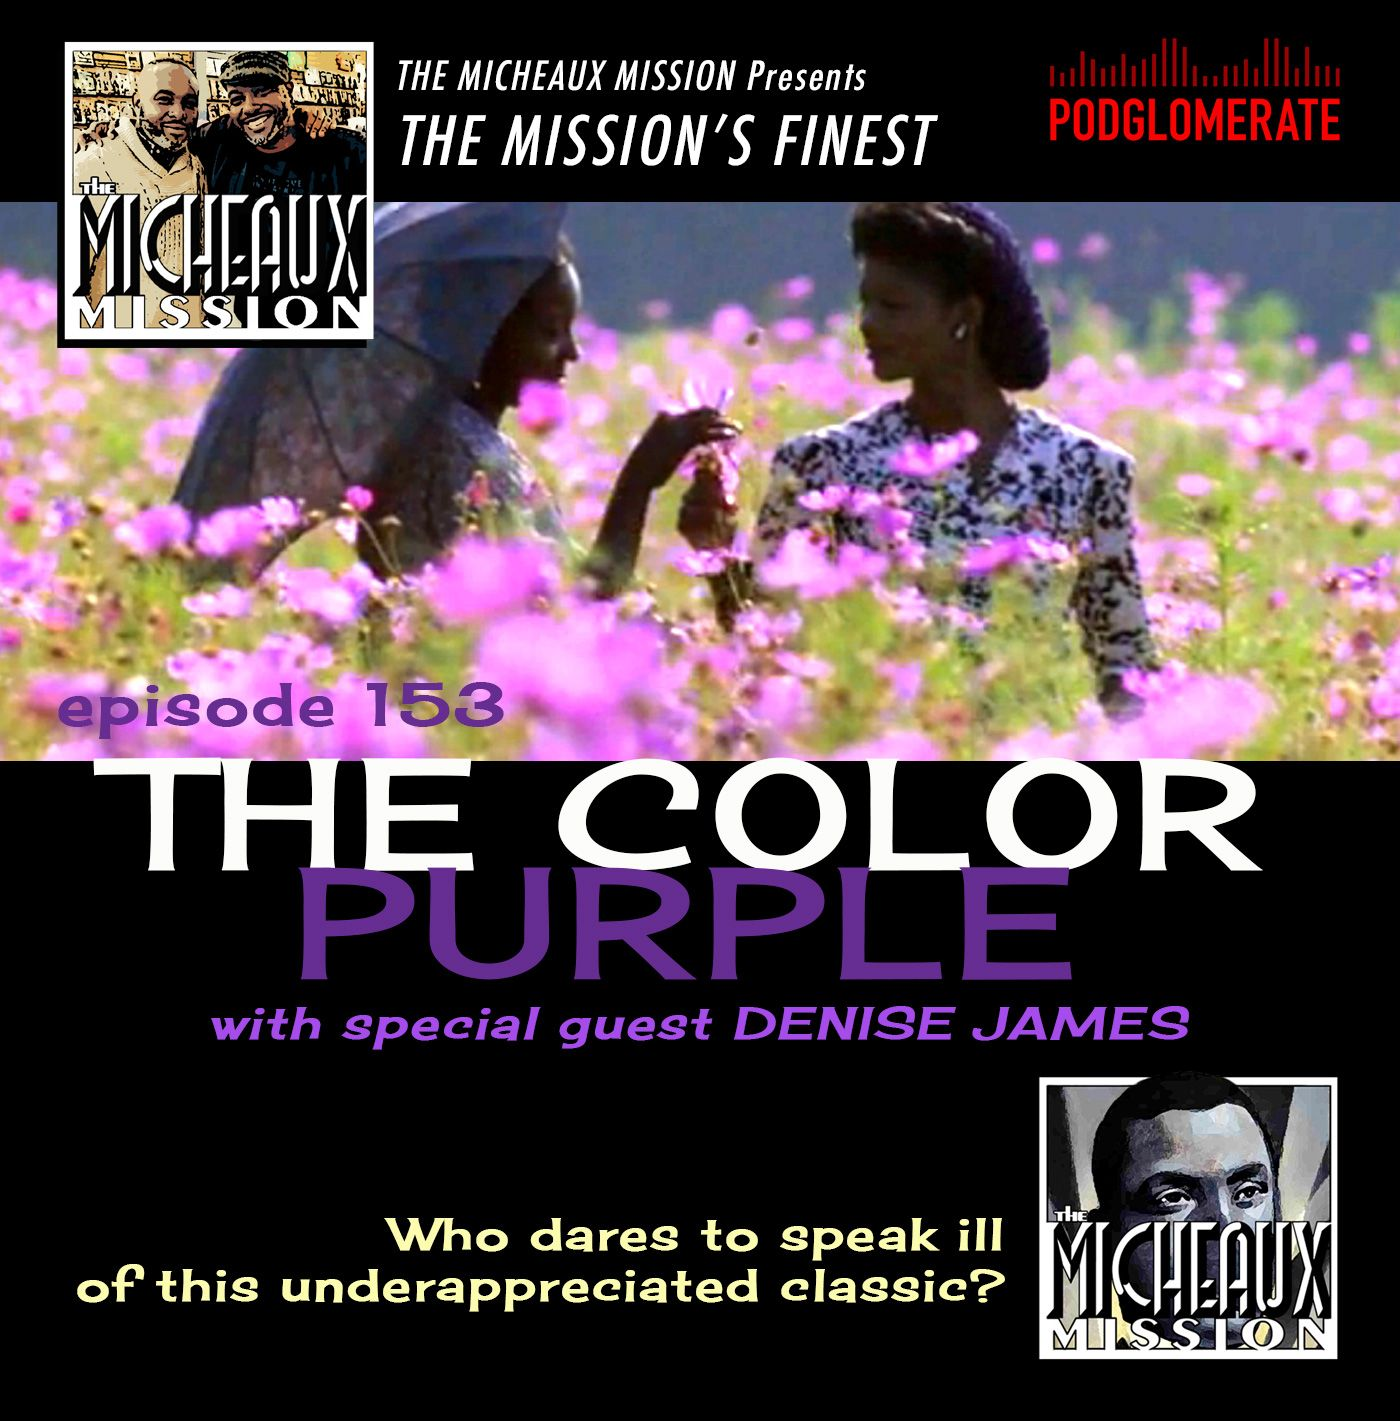 MISSION FINEST - The Color Purple (1985) with Denise James